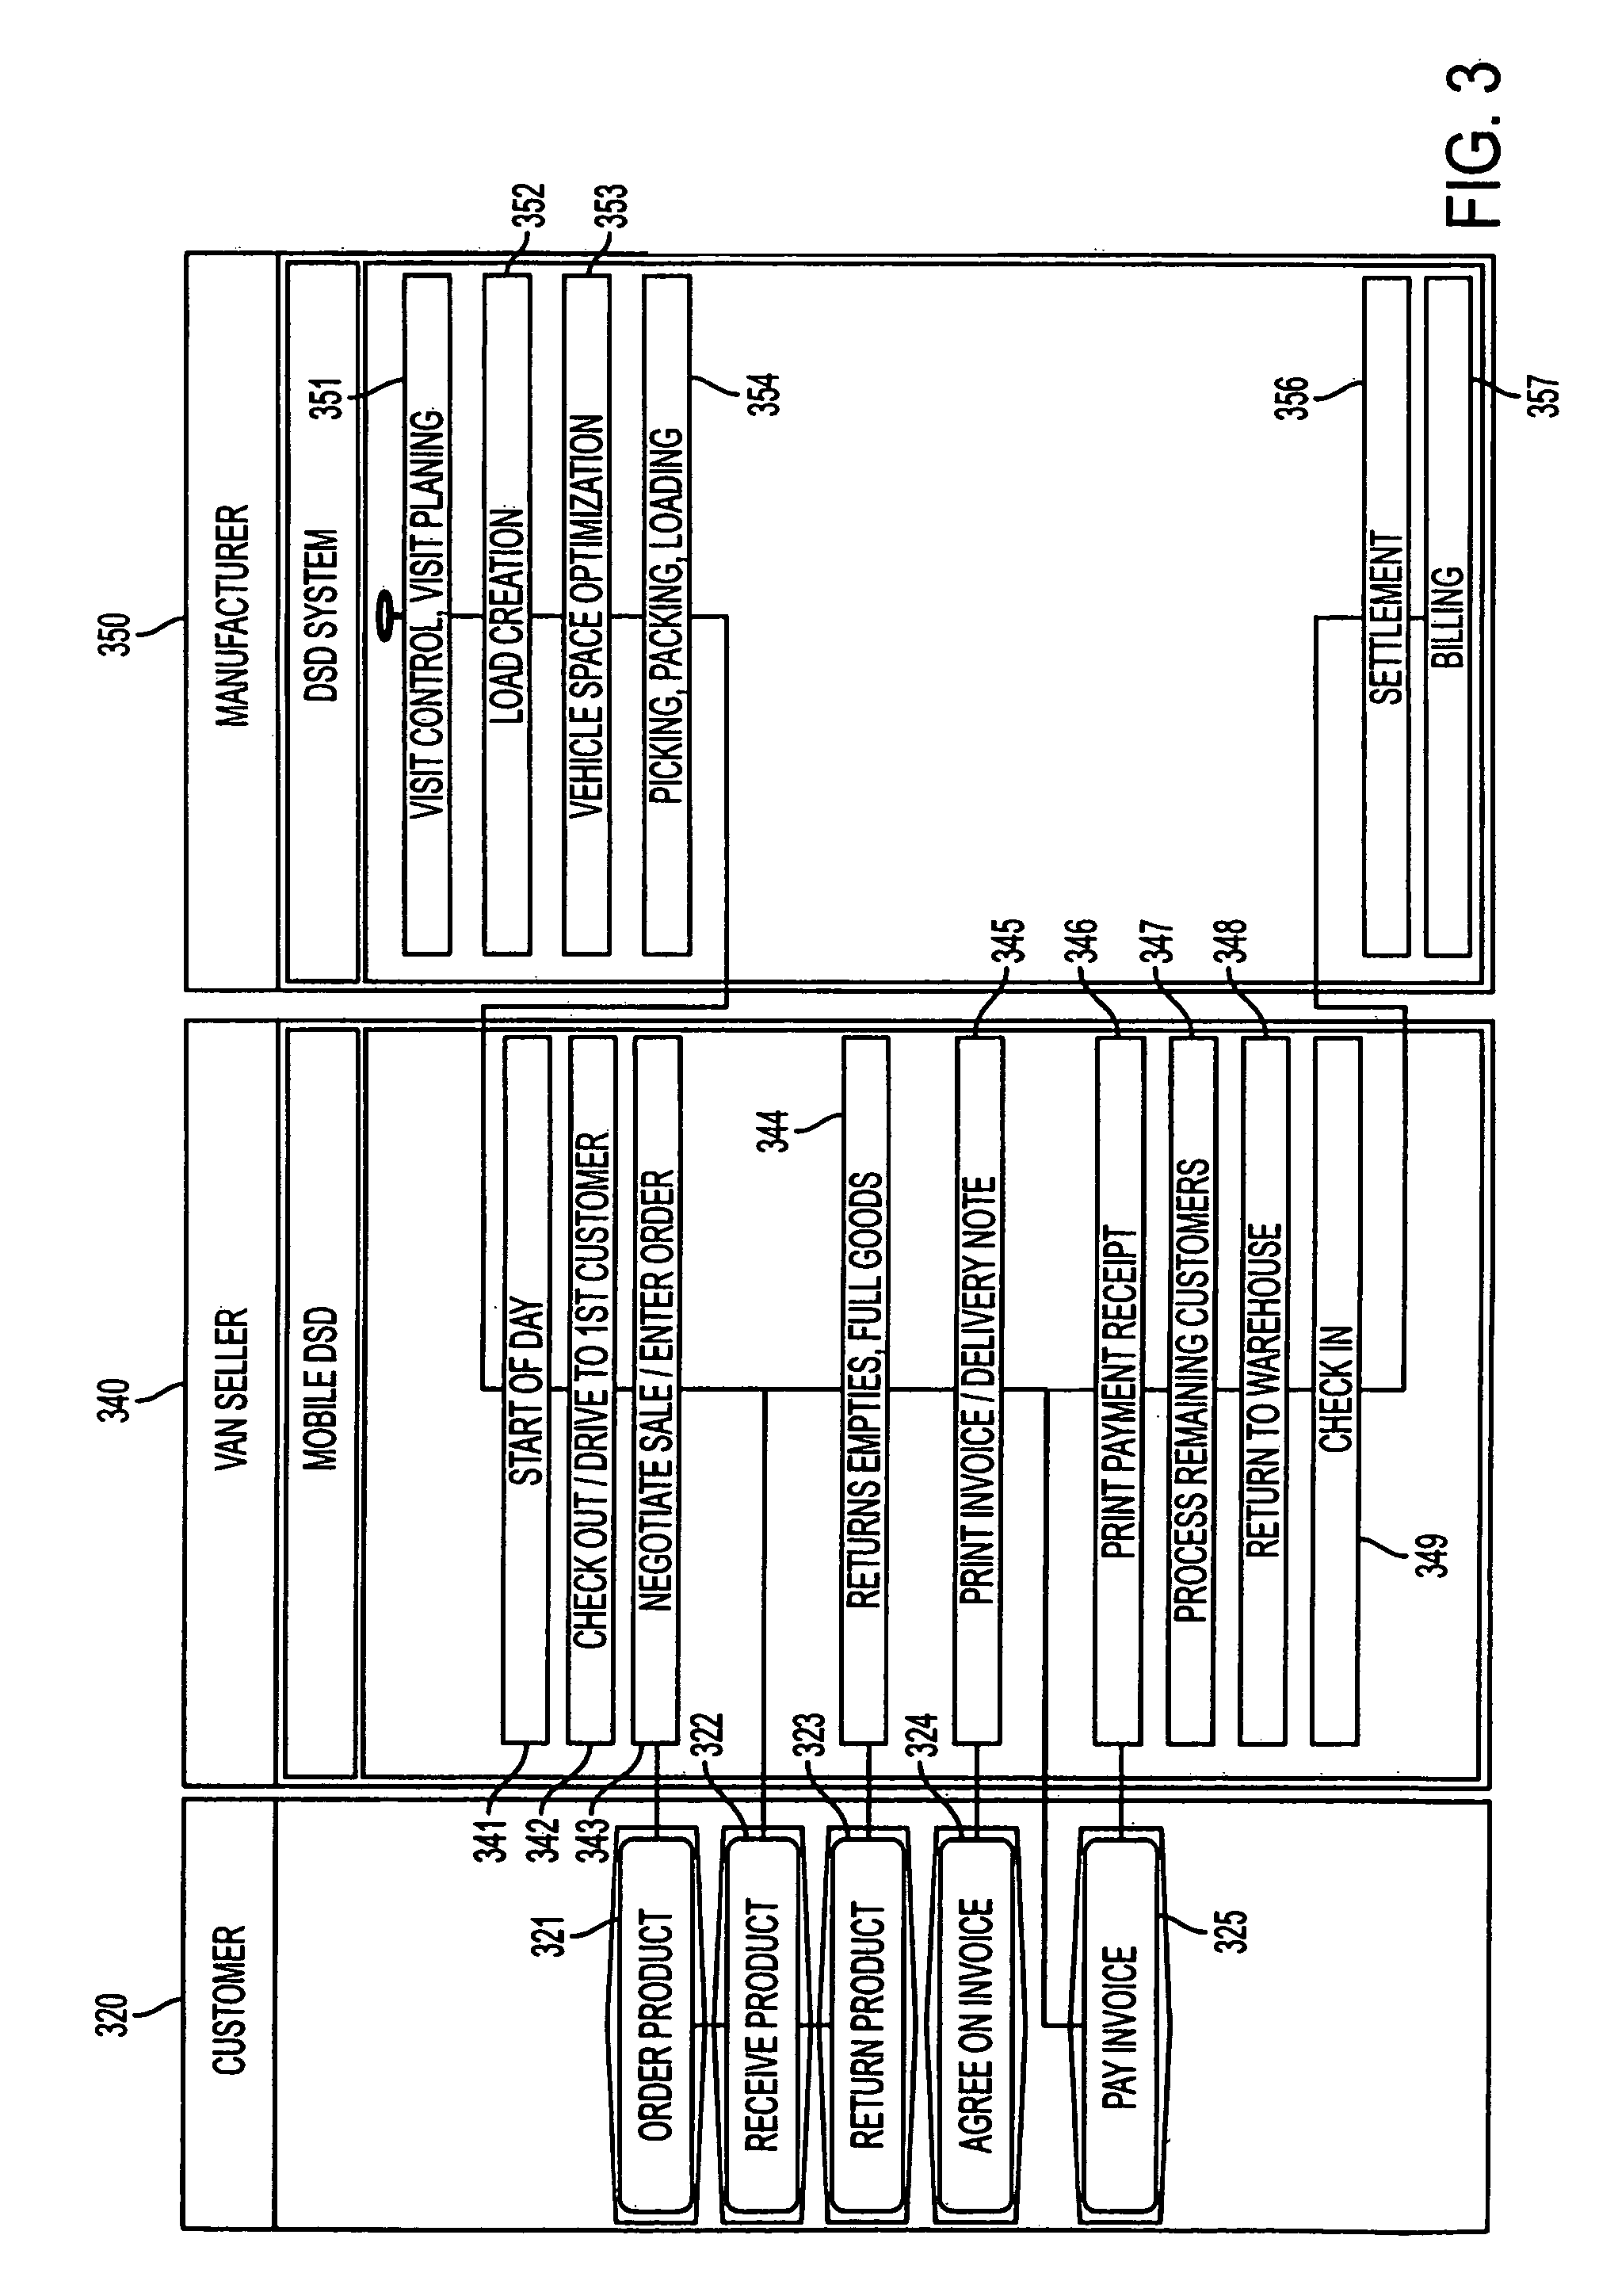 Commercial Shipping Invoice Word Patent Us  Endtoend Solution For Direct Store Delivery  Return Receipt Mail Excel with Invoice Programs For Mac Word Patent Drawing Example Of An Invoice Word